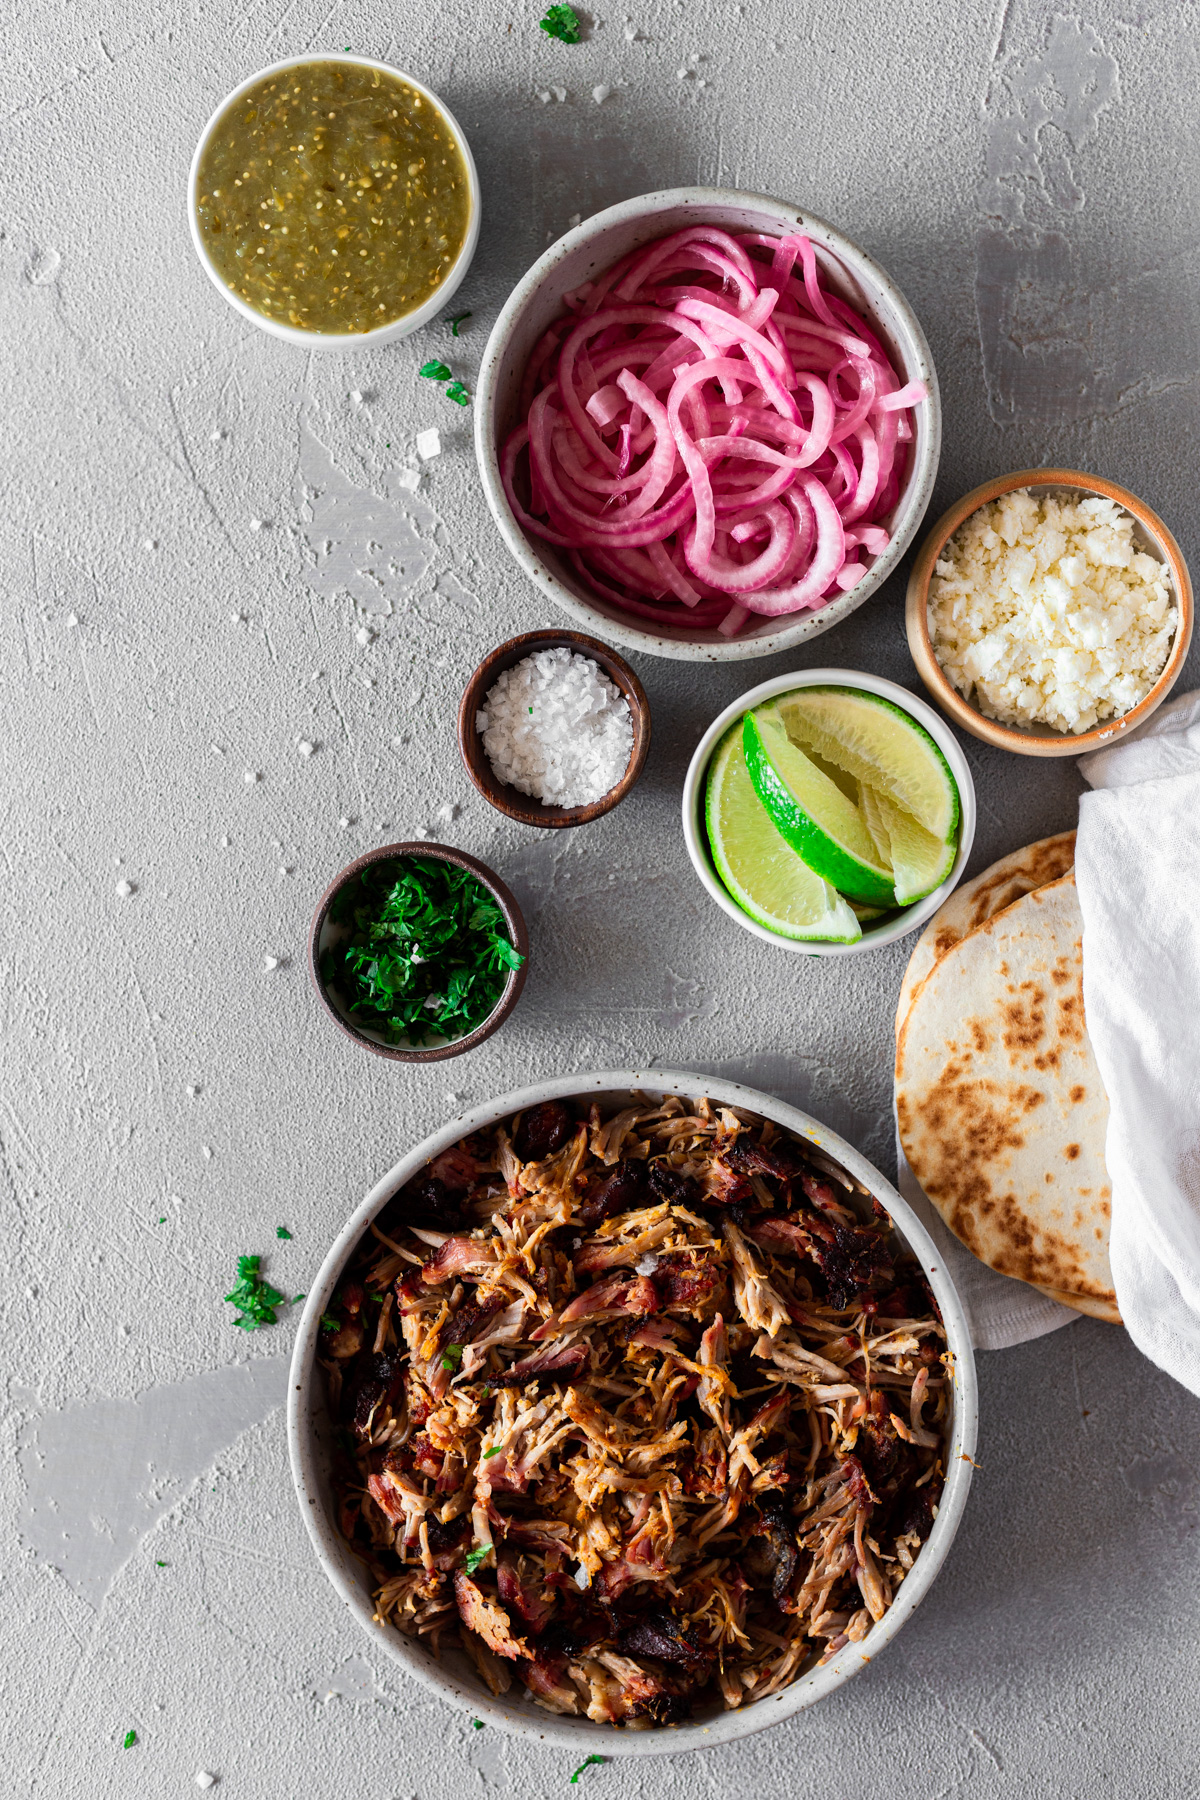 ingredients for cochinita pibil tacos in bowls on a gray background